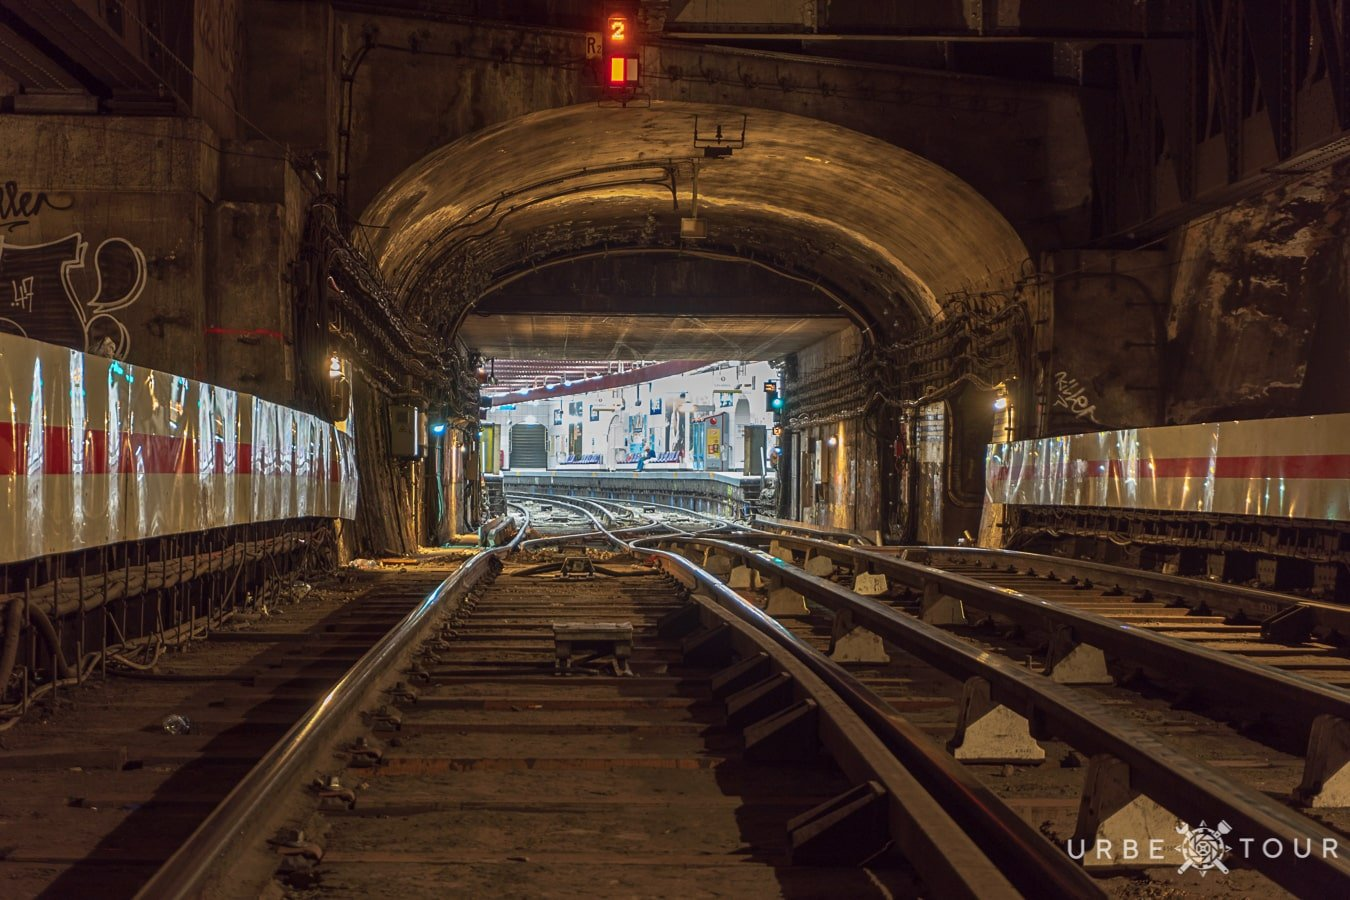 paris-metro-exploration-2018-26-min EXPLORING PARIS METRO: THREE LINES CROSSING CAMERA UNDER OPERA